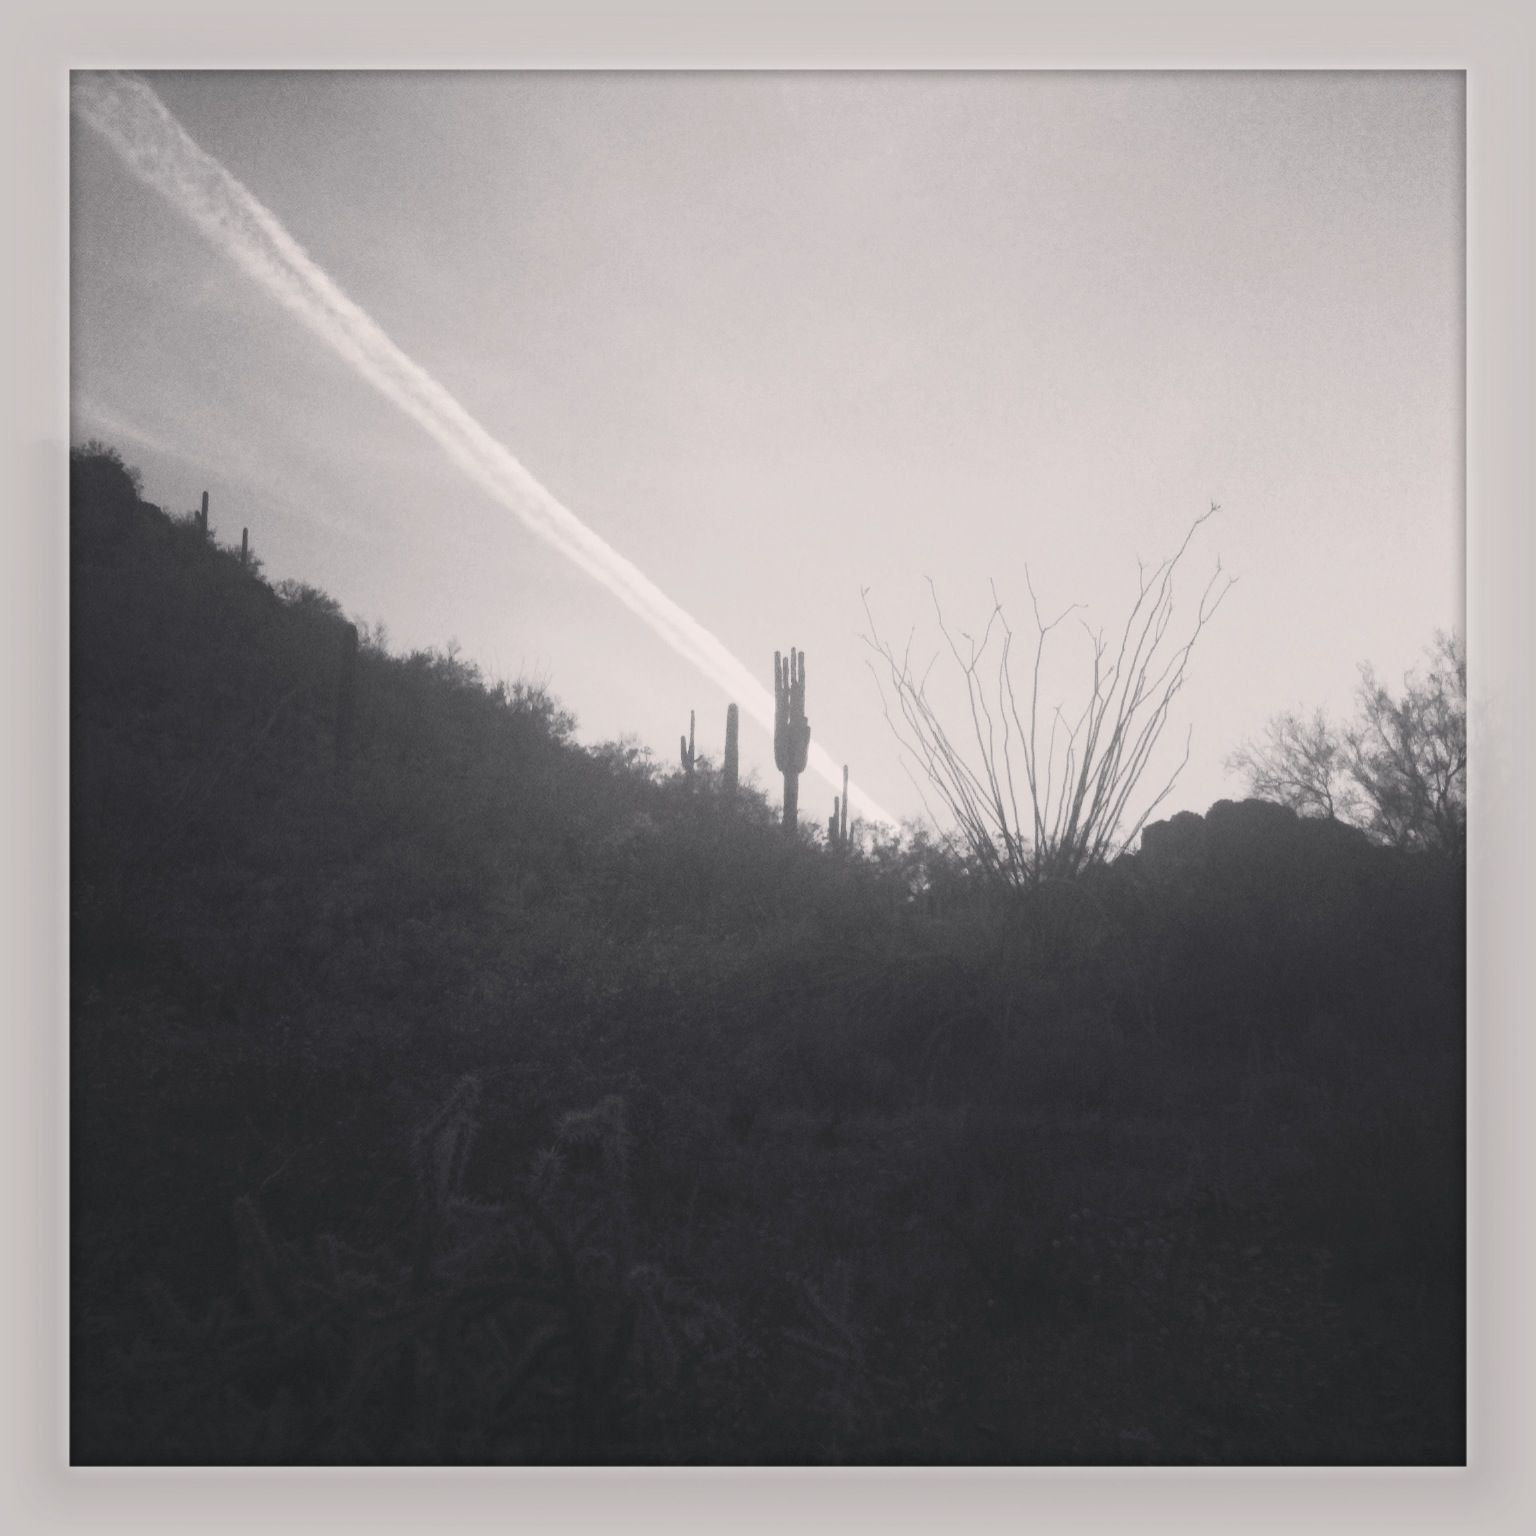 Hostile territory. Sonoran desert, AZ 2013. #travel #nature #desert #rocks #cactus #sunset #blackandwhite #photography